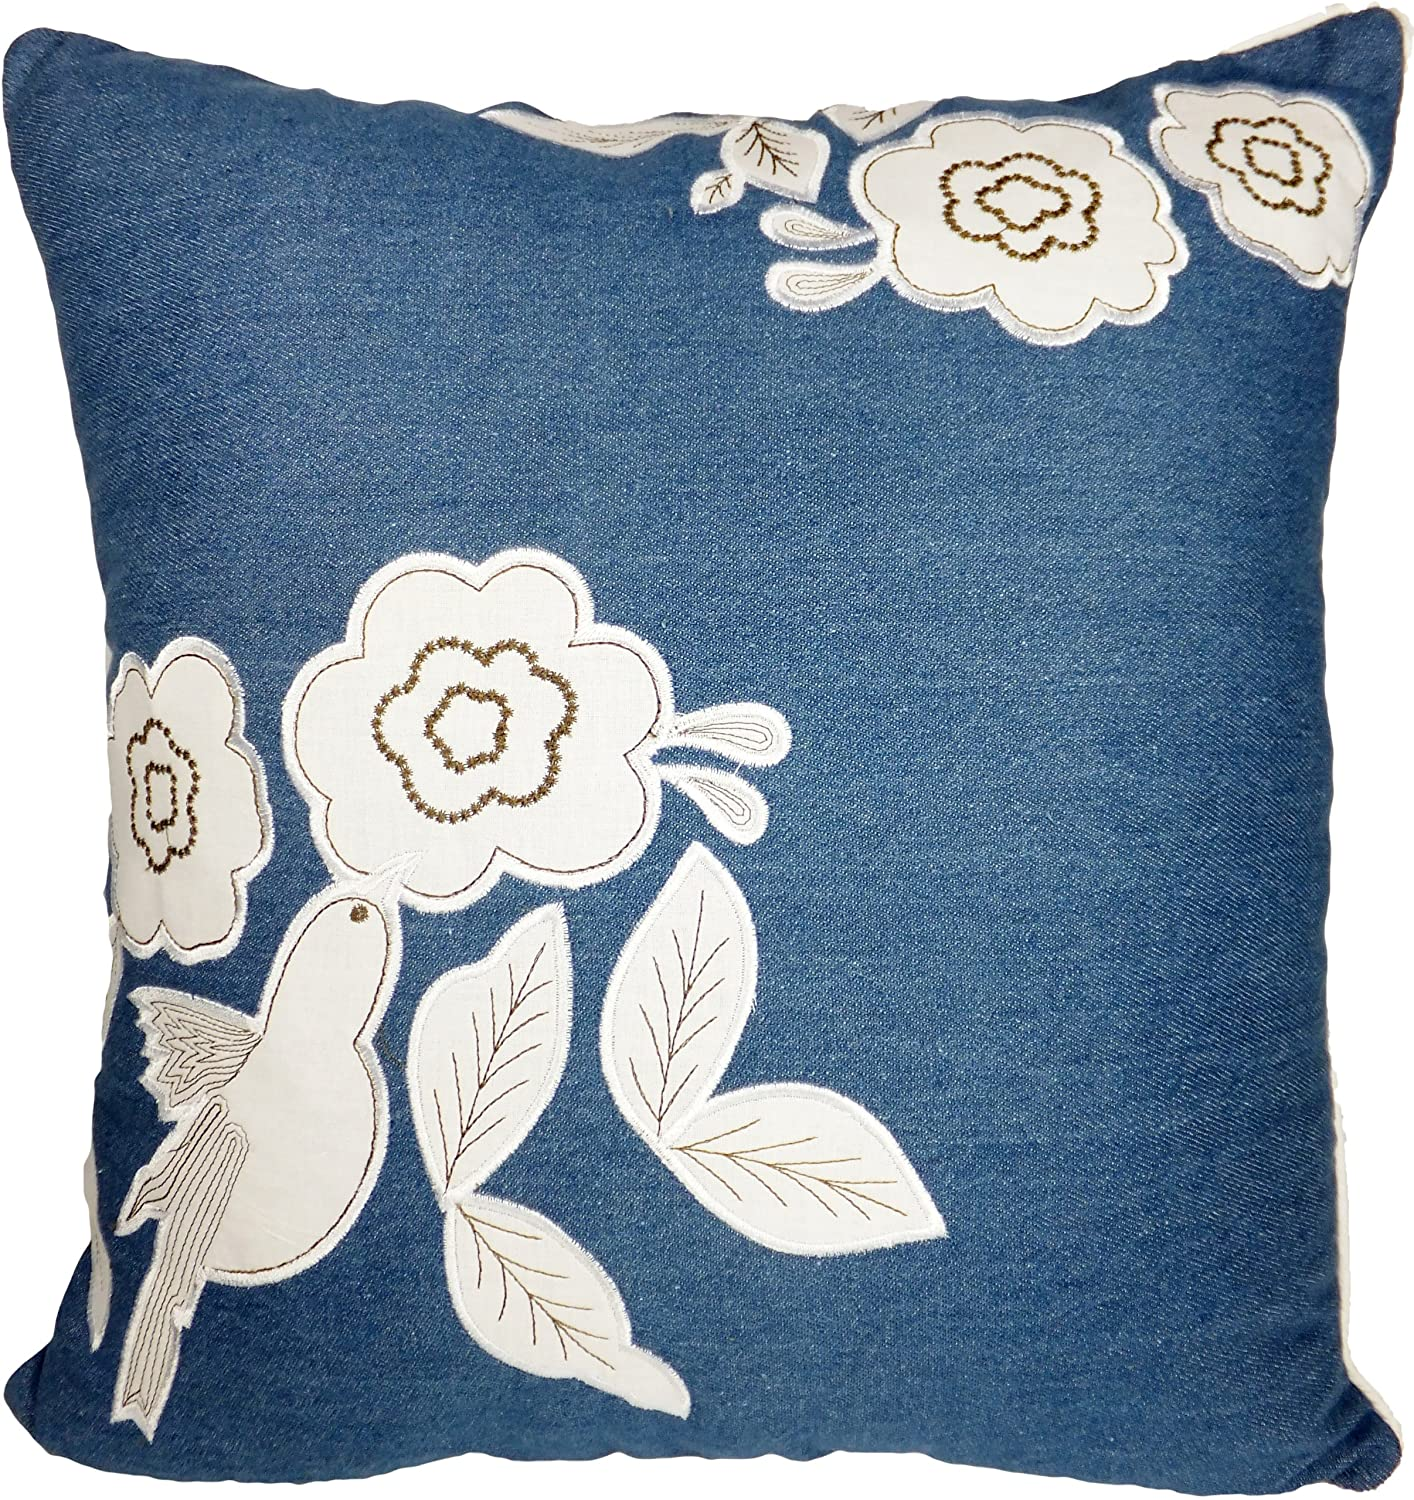 Decorative Floral Applique Blue Throw Pillow Cover 18